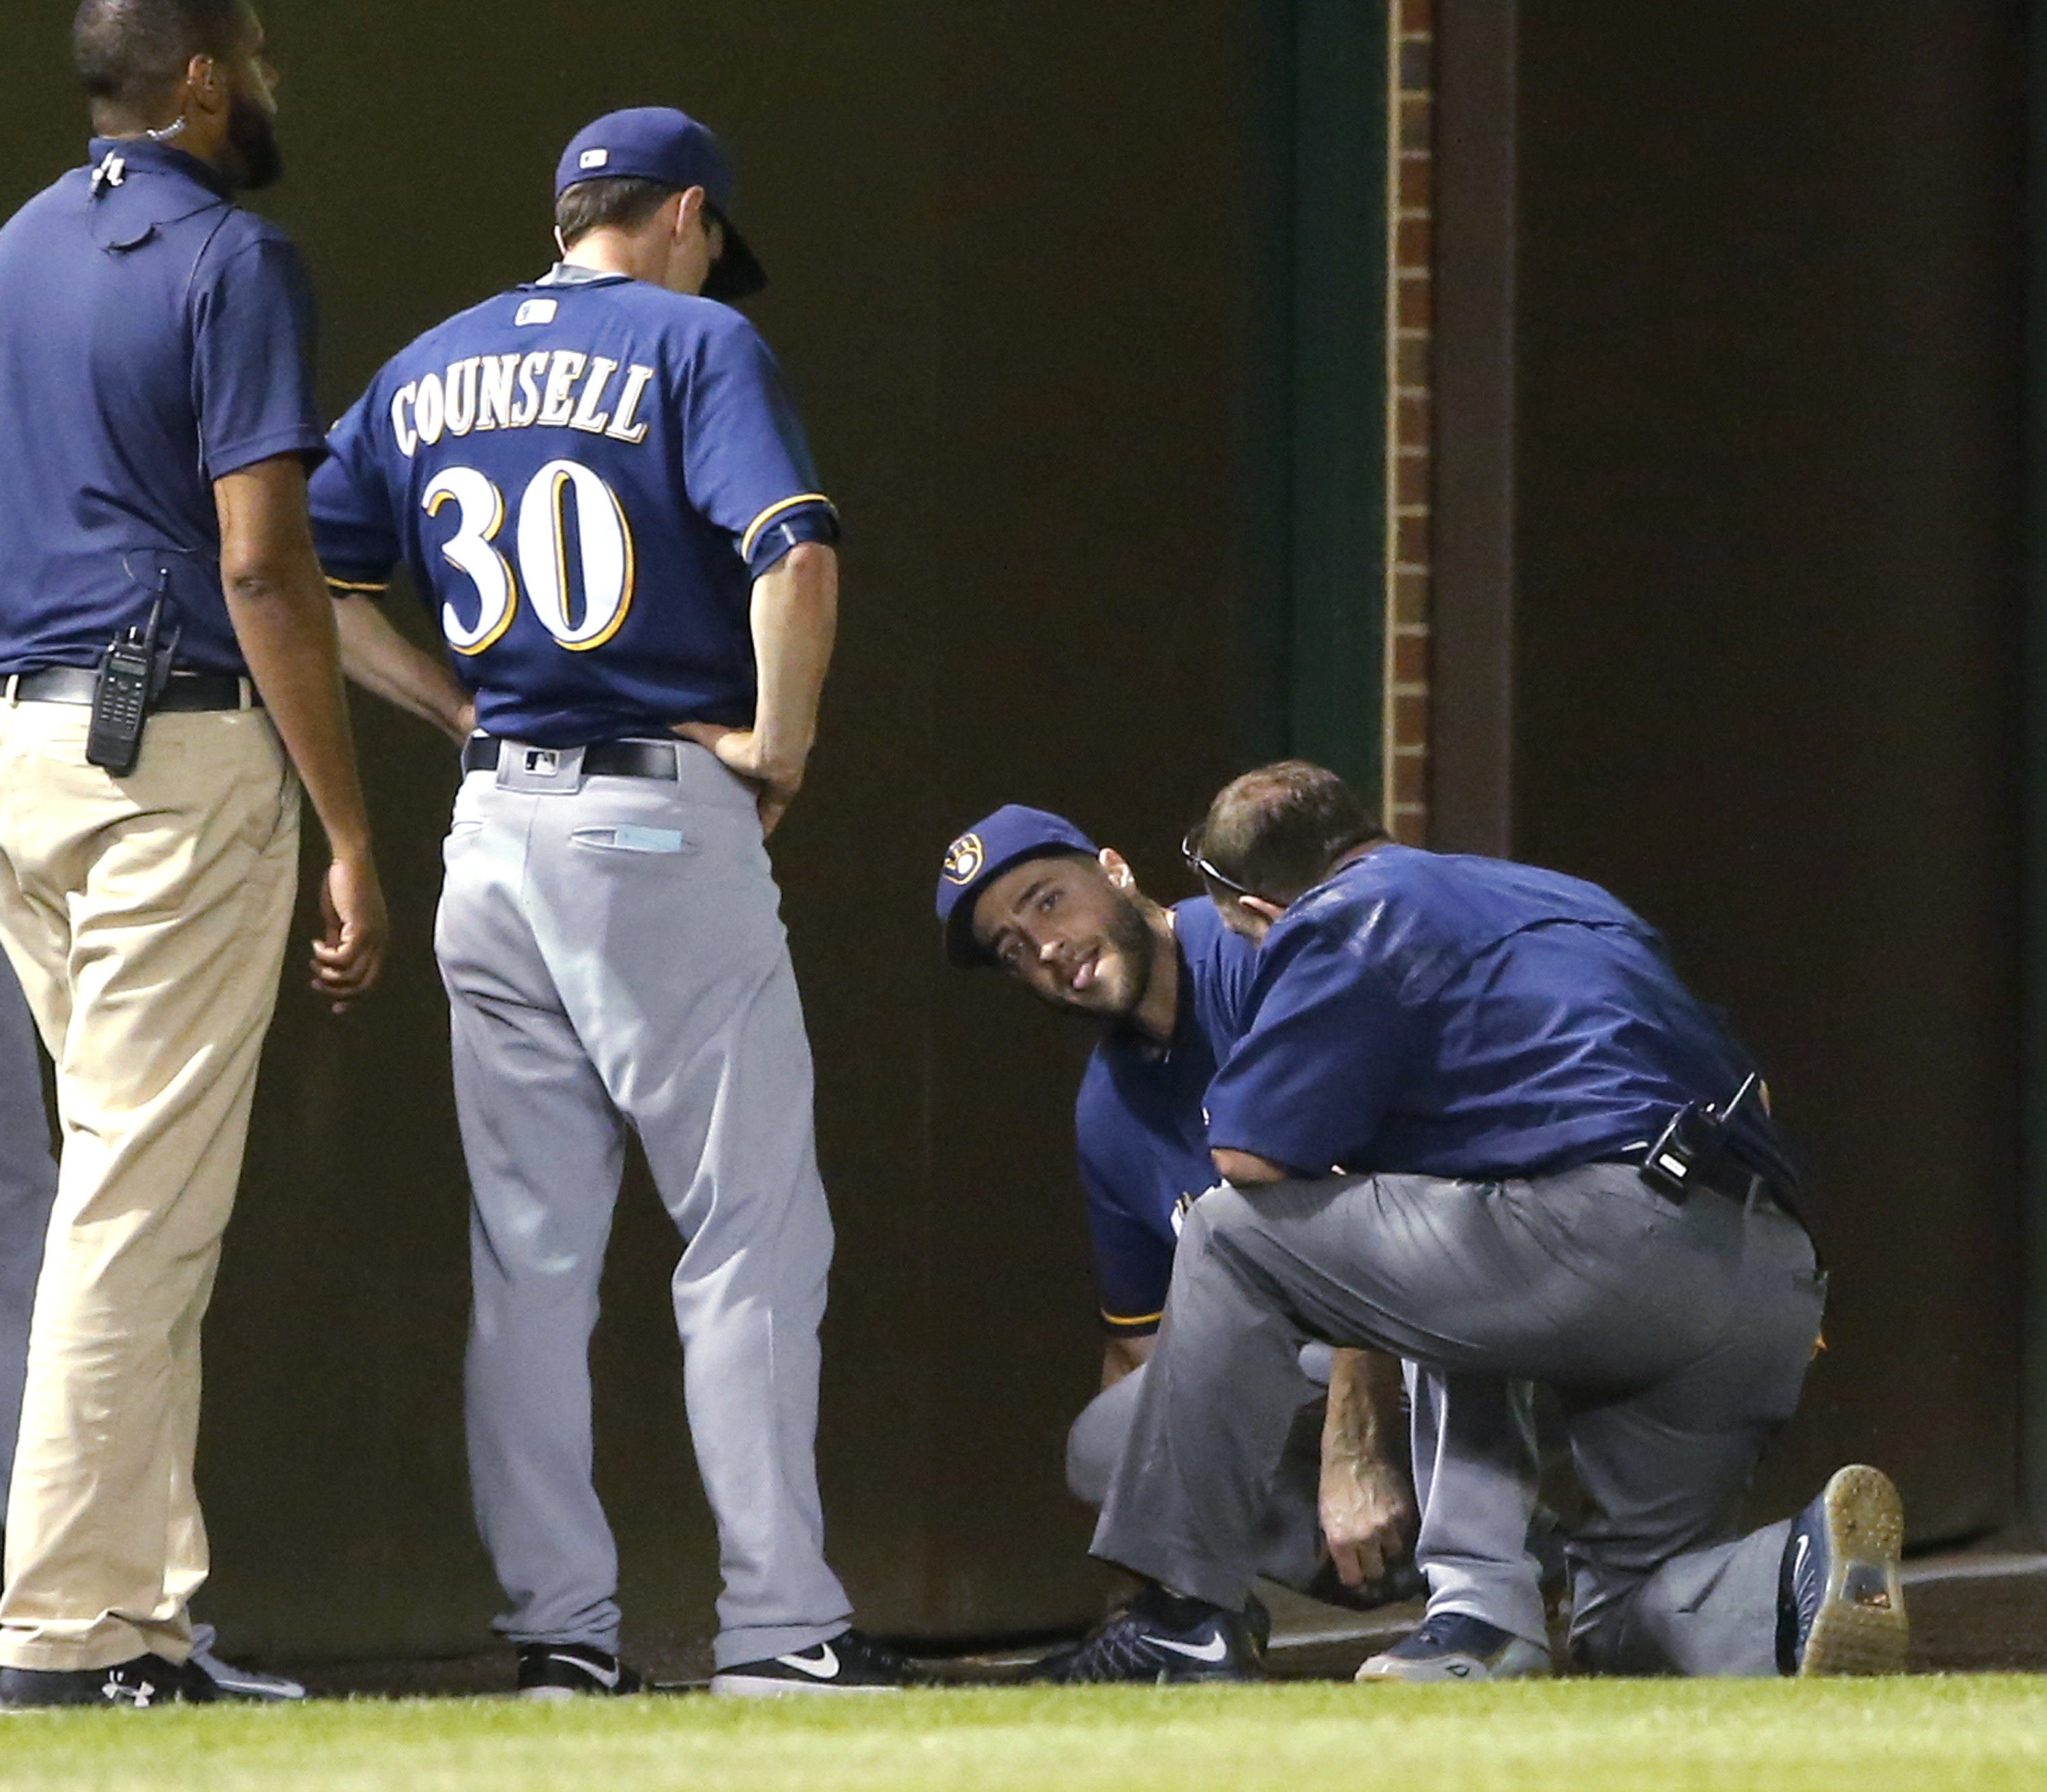 Milwaukee Brewers' Ryan Braun, center, is checked a member off the Brewers' medical staff and manager Craig Counsell after Braun injured his left leg chasing a foul ball by Chicago Cubs' Ben Zobrist during the fourth inning of the second game of a basebal